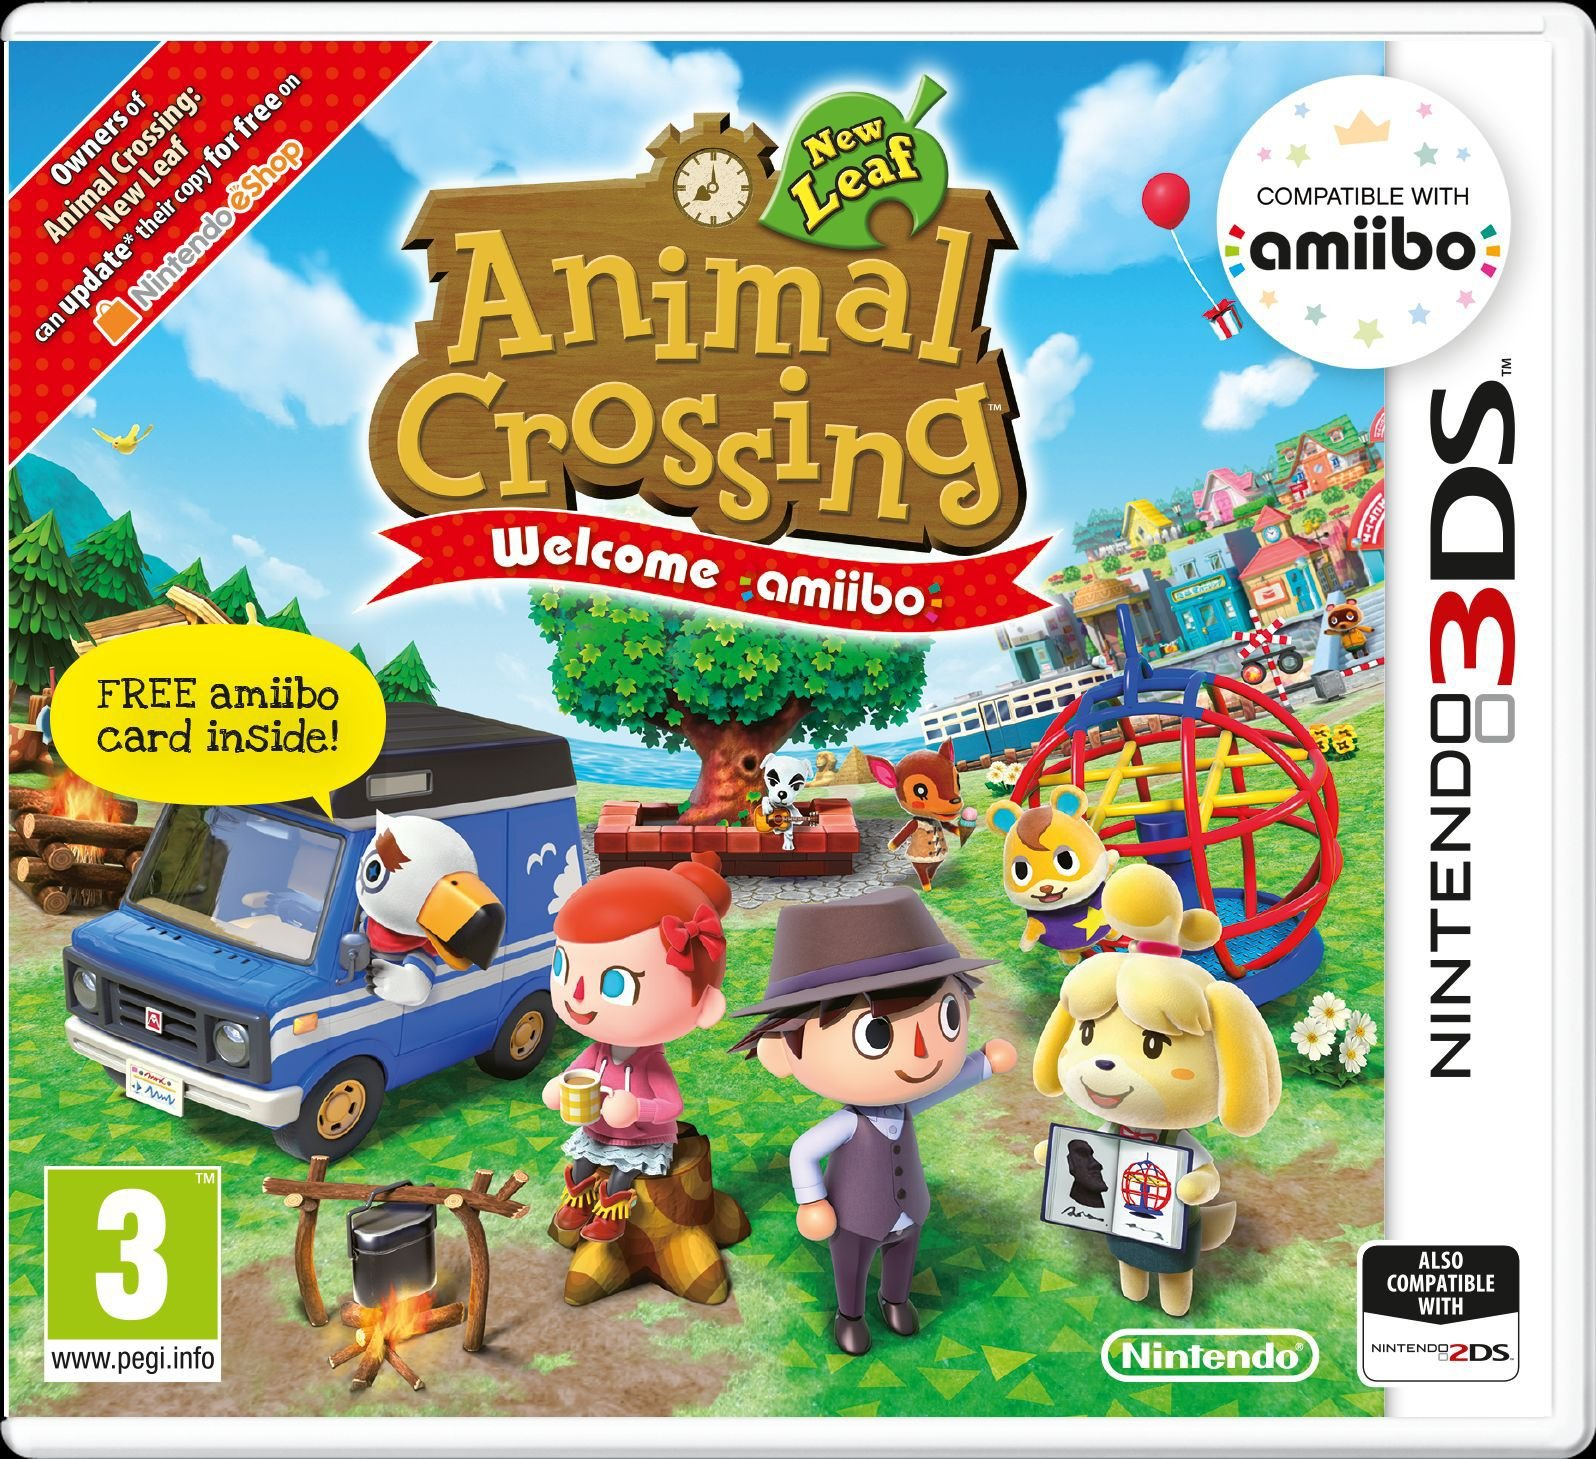 Nintendo Animal Crossing: New Leaf Welcome Amiibo 3DS Game and Card.